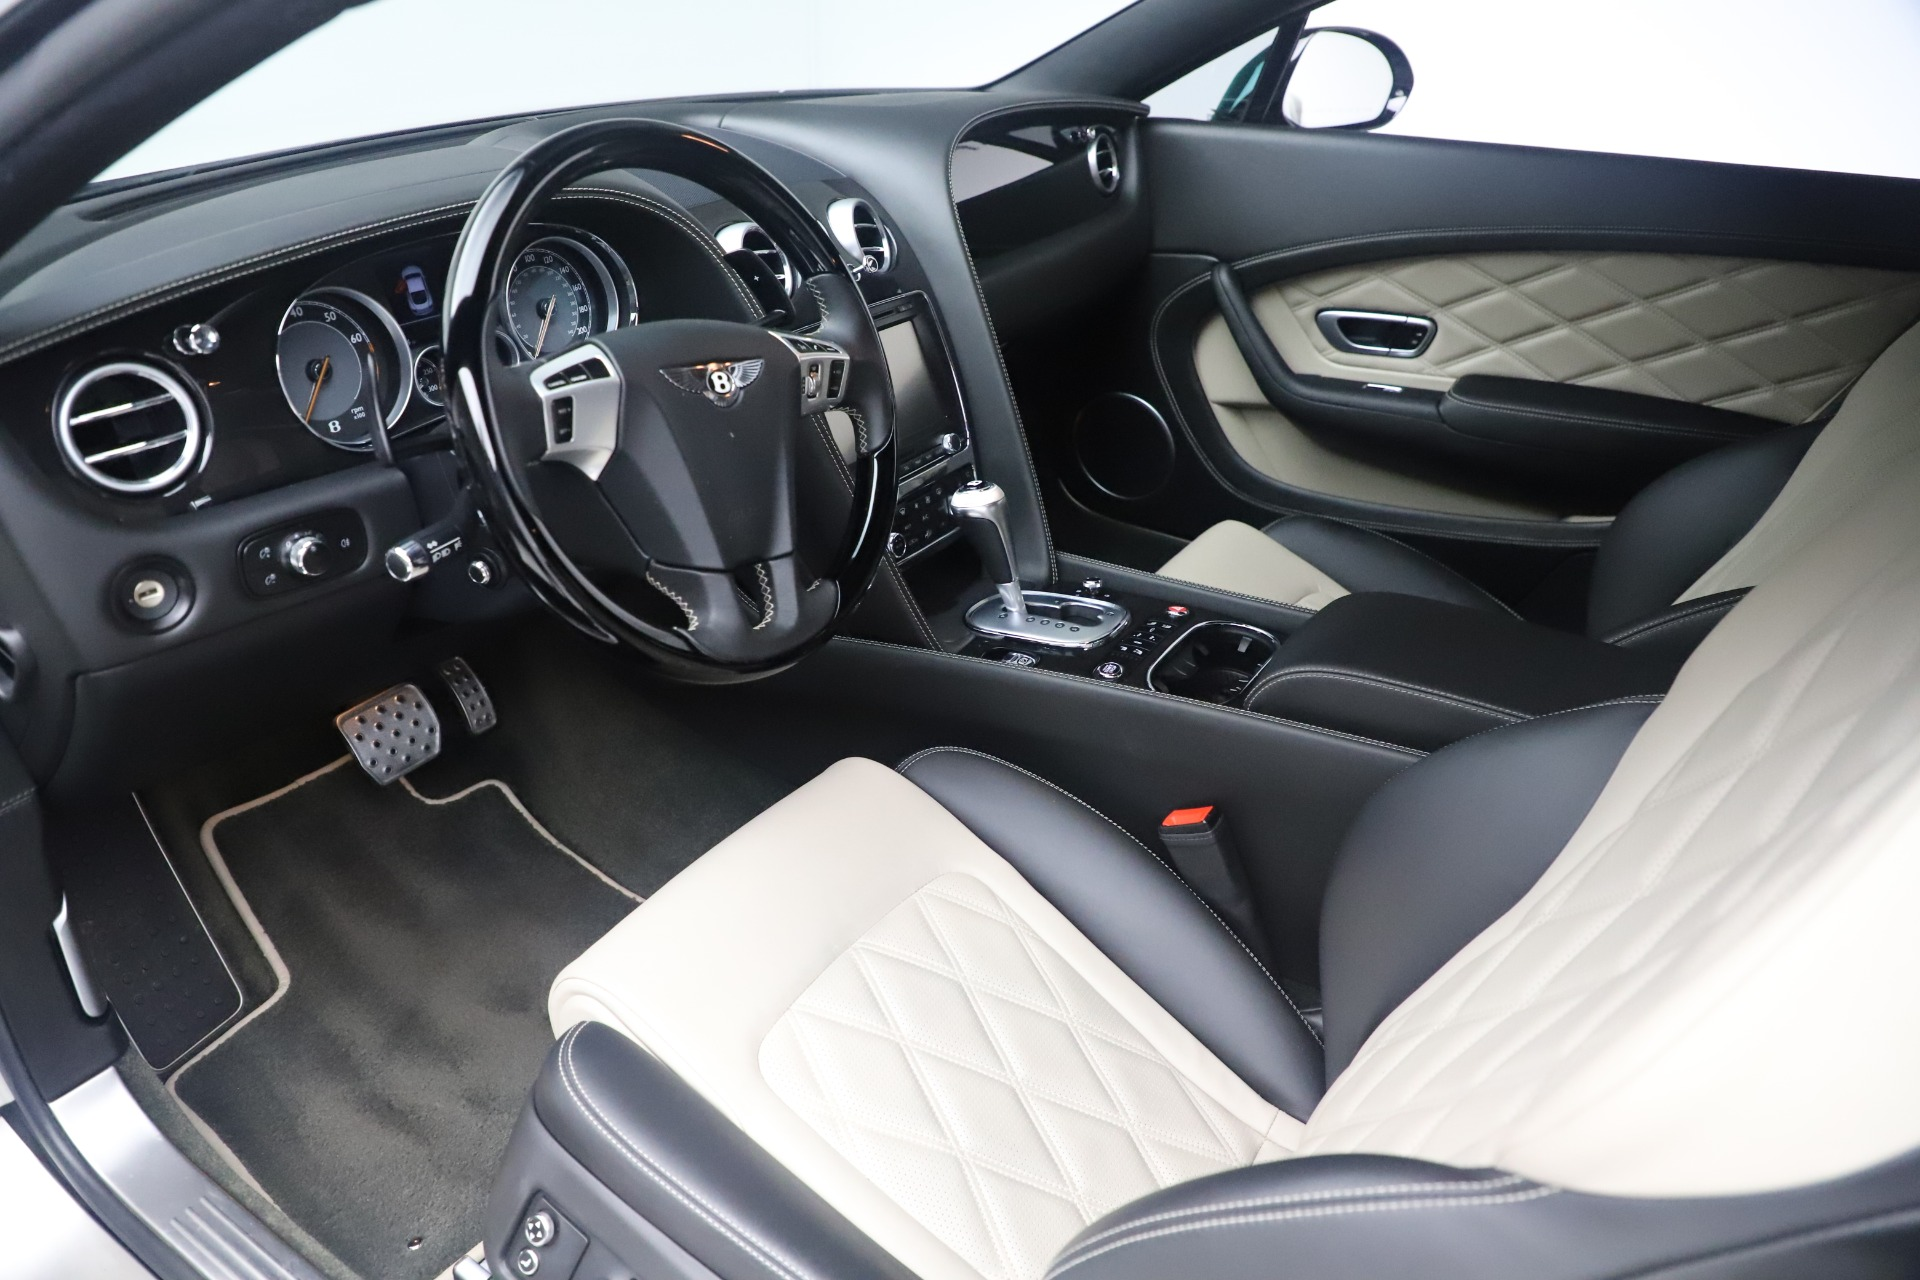 Used 2014 Bentley Continental GT V8 S For Sale In Westport, CT 3541_p17